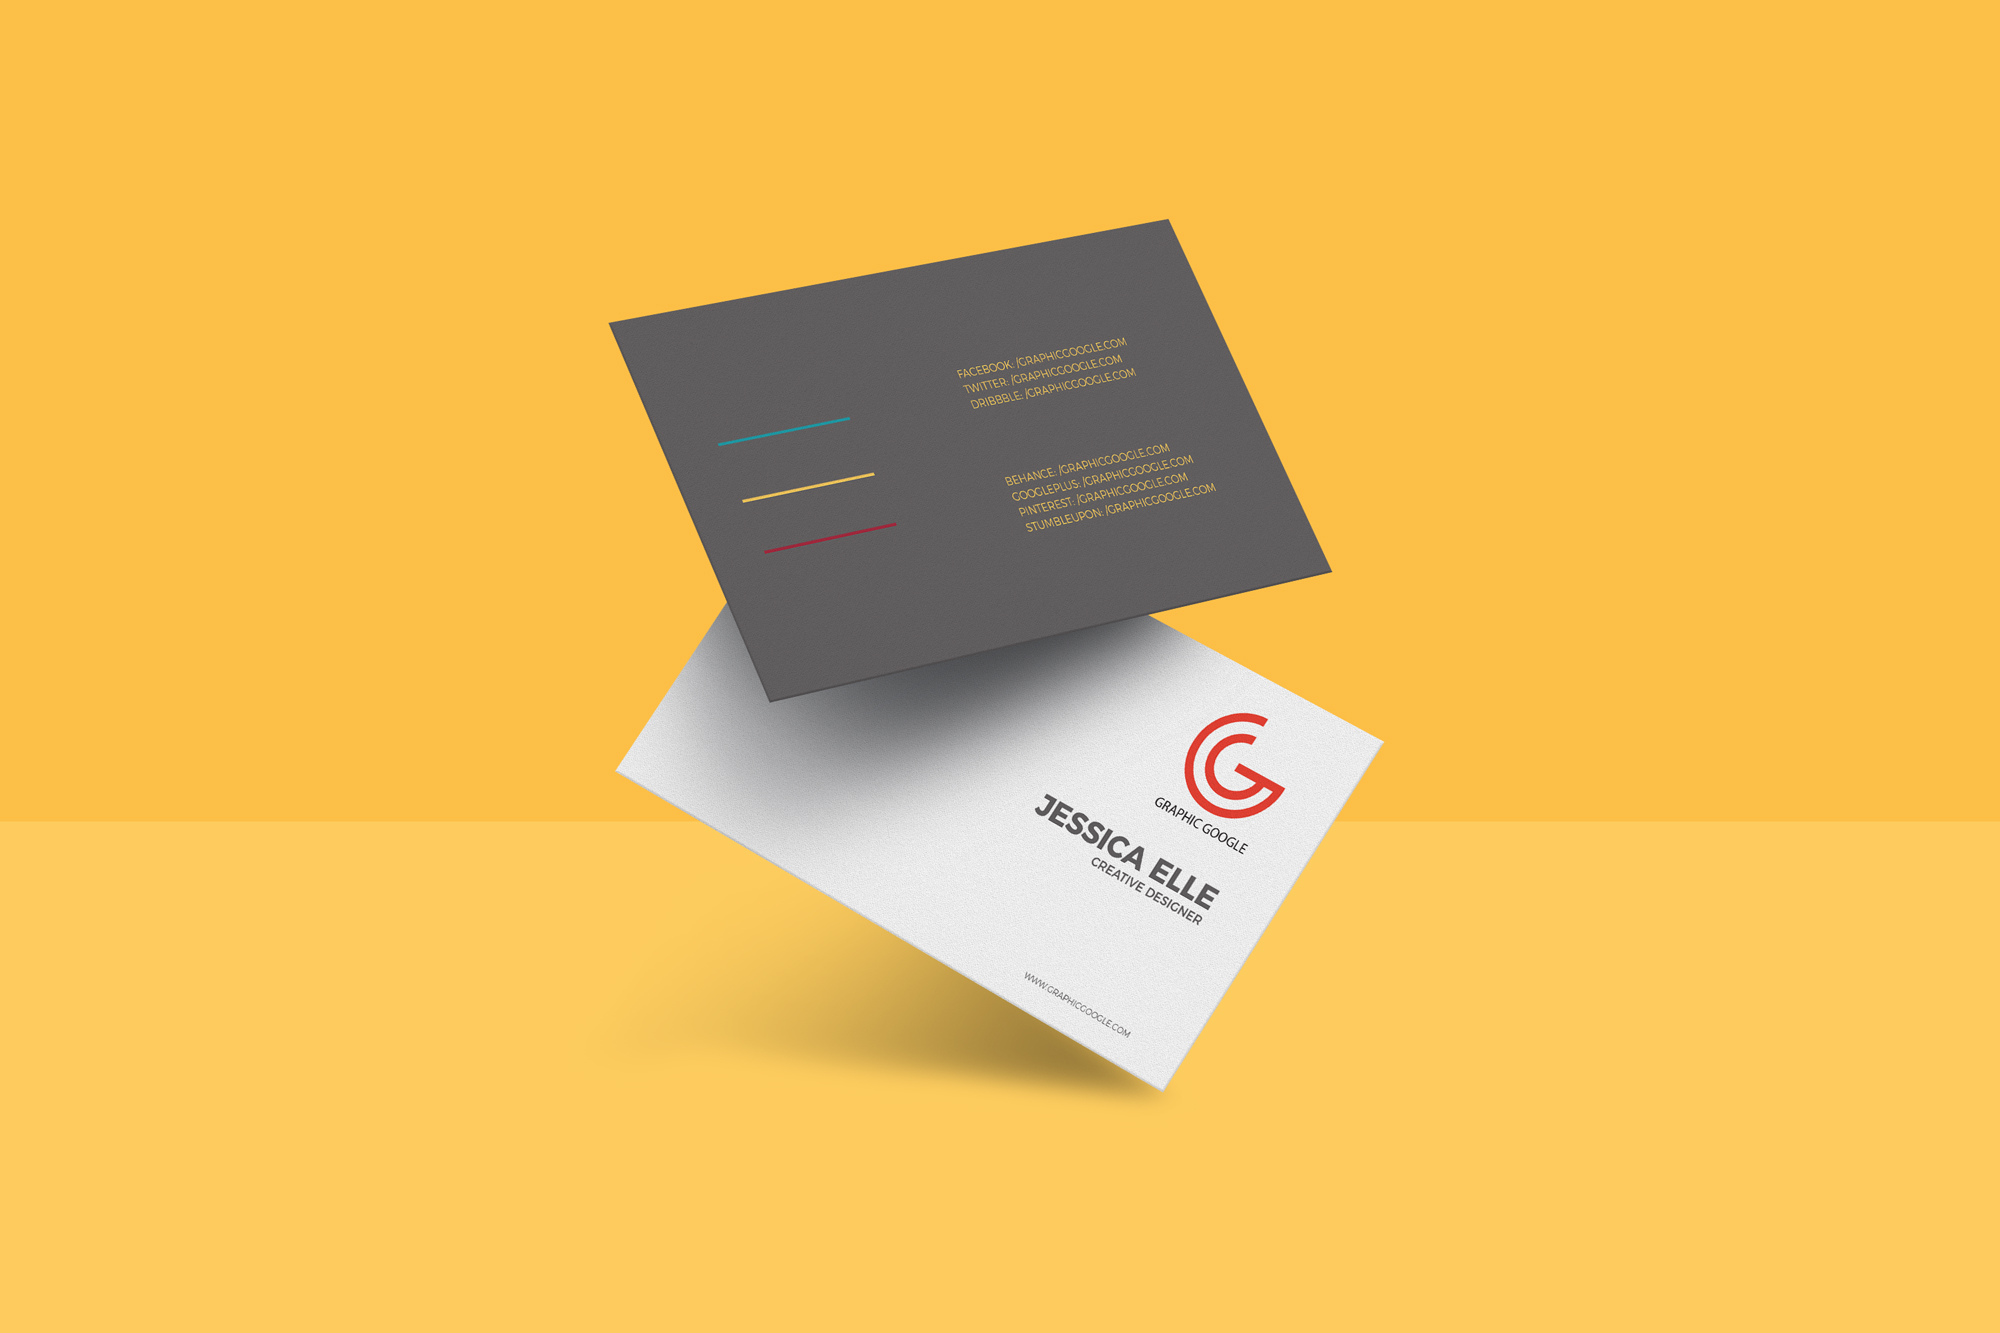 Free floating business card mockup for Business card images free